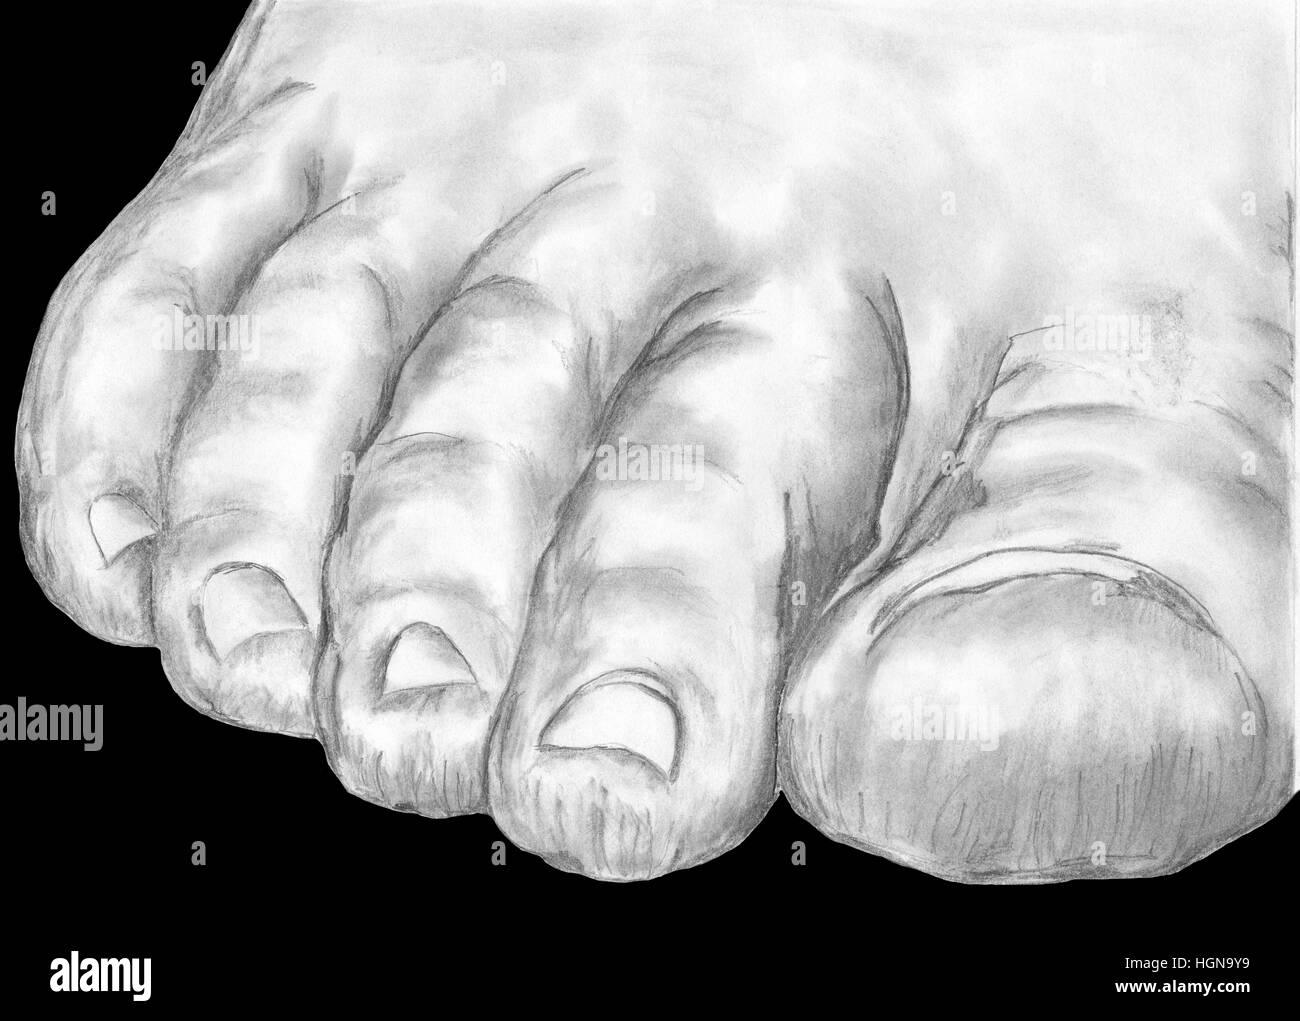 Heavy Foot - representing oppression,defeat,overbearing weight,pressure etc. - Stock Image